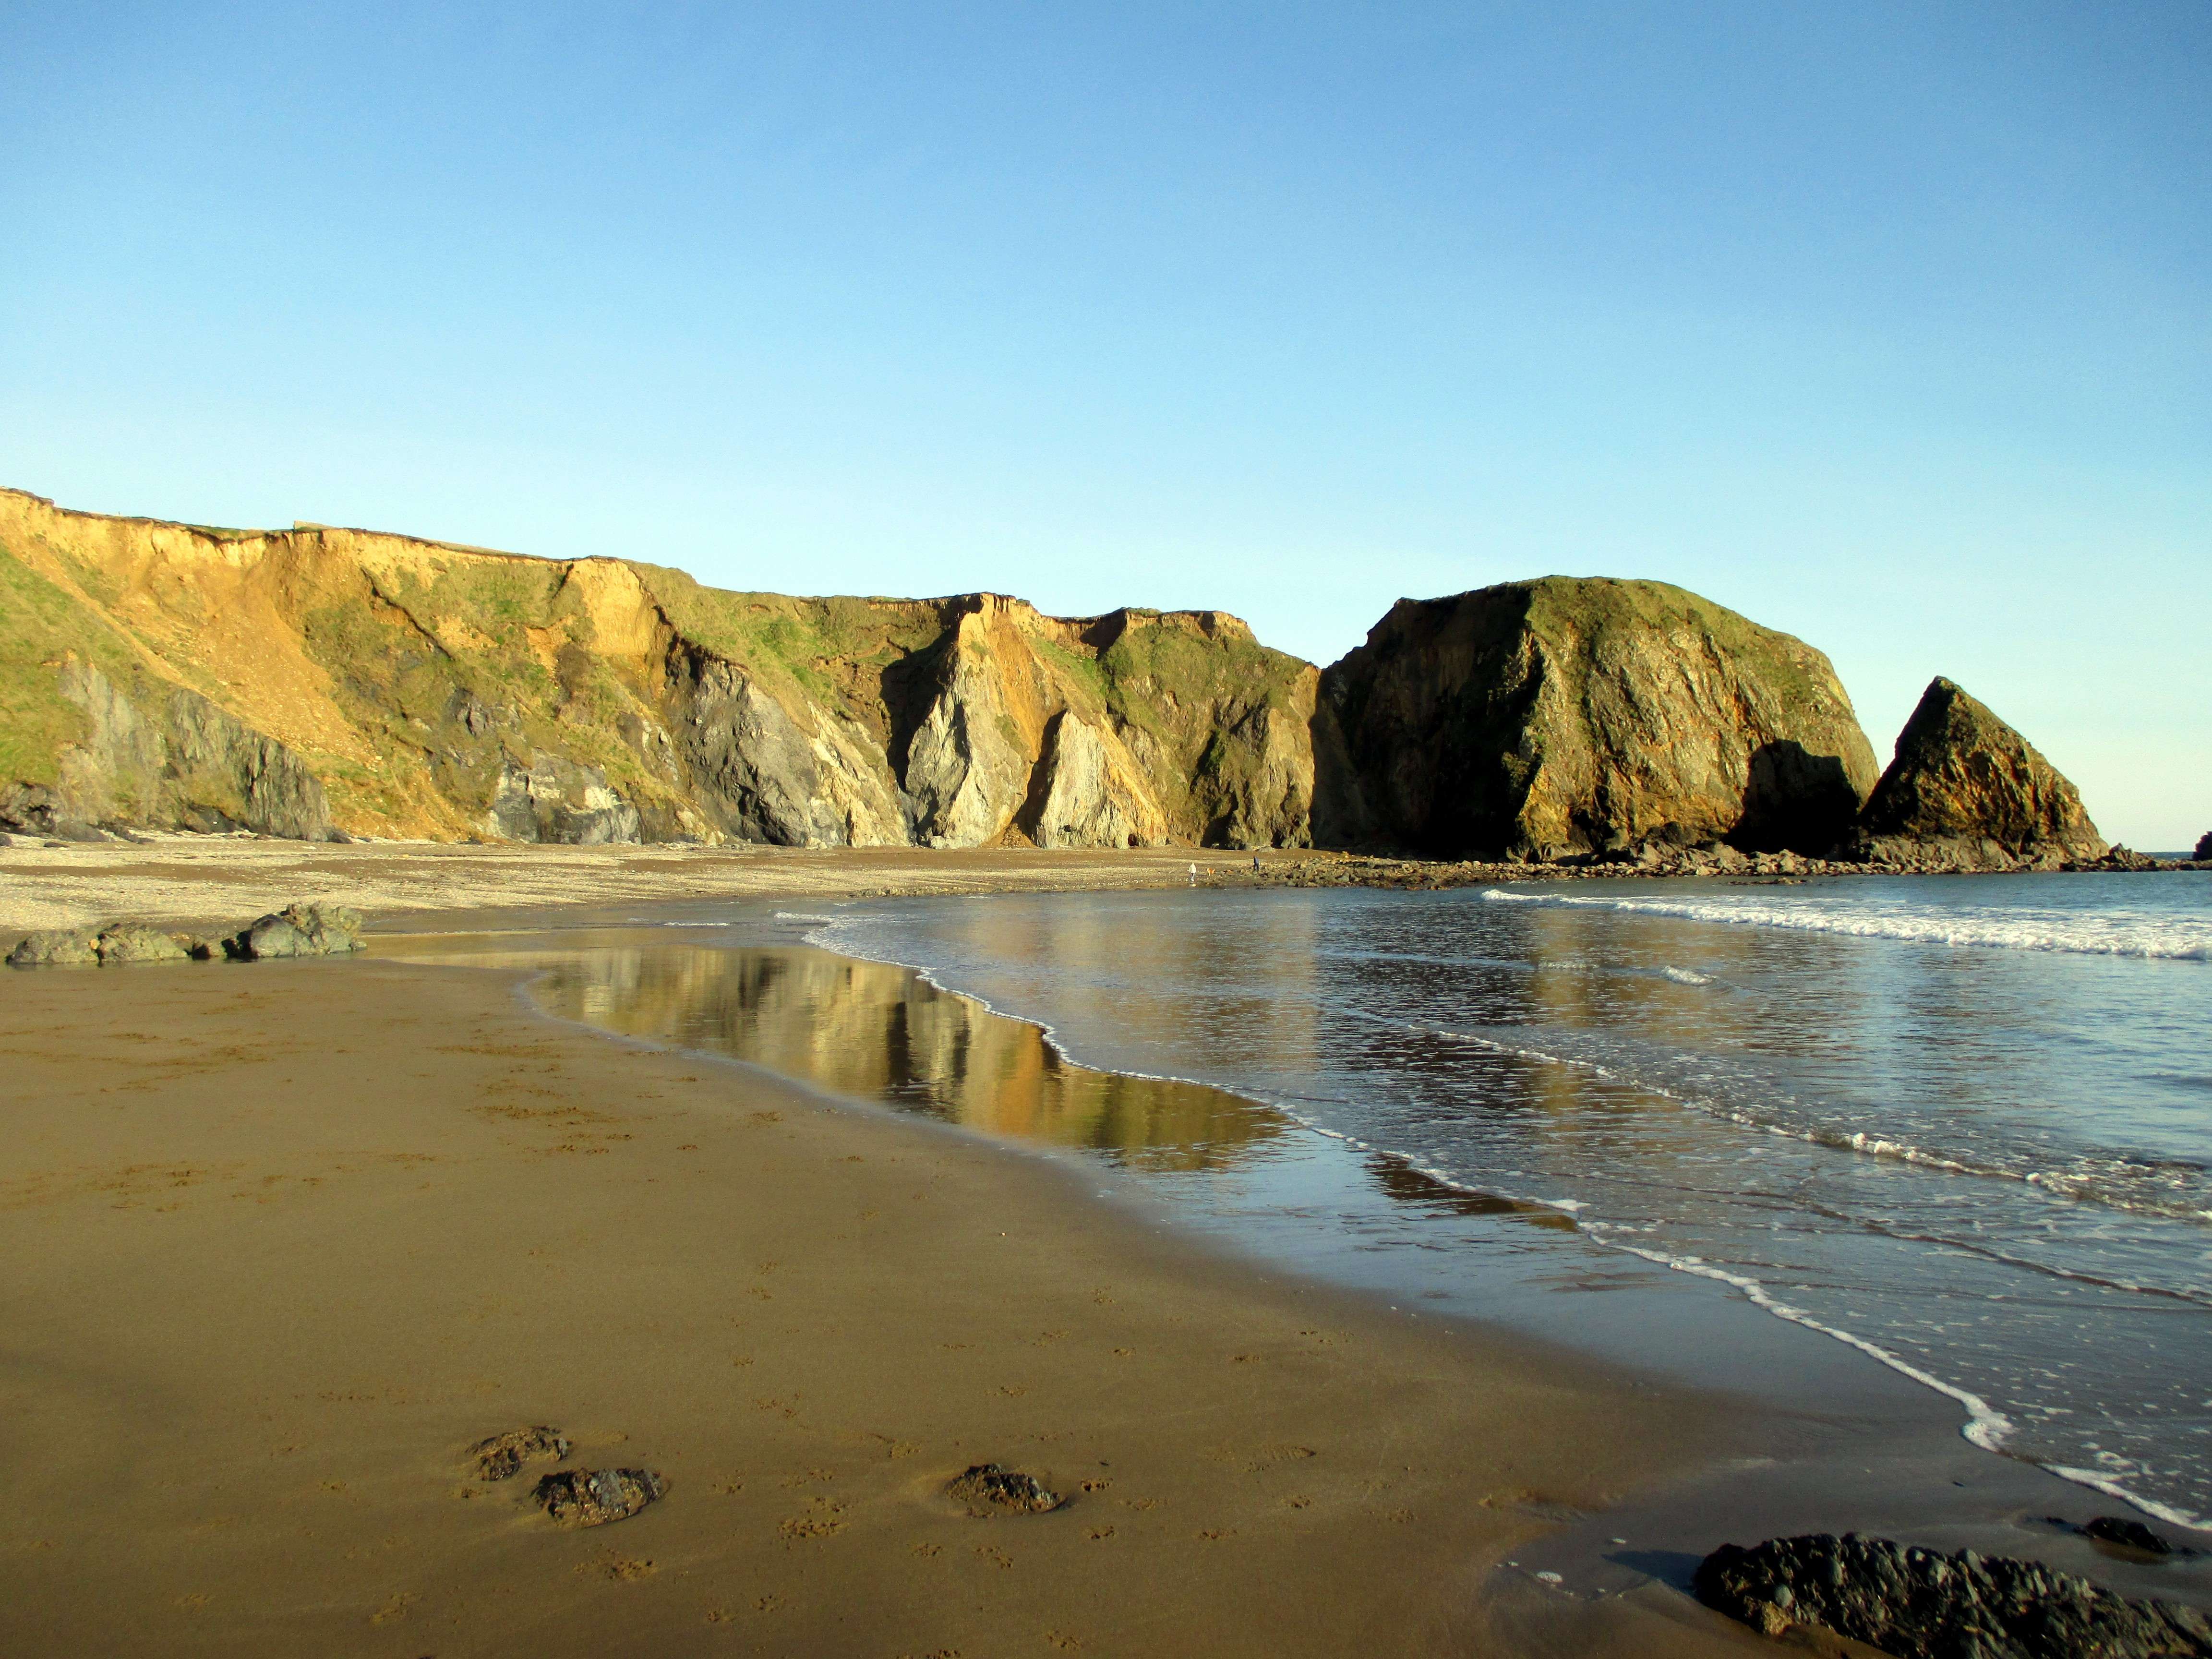 Reflection on the Copper Coast, Co. Waterford